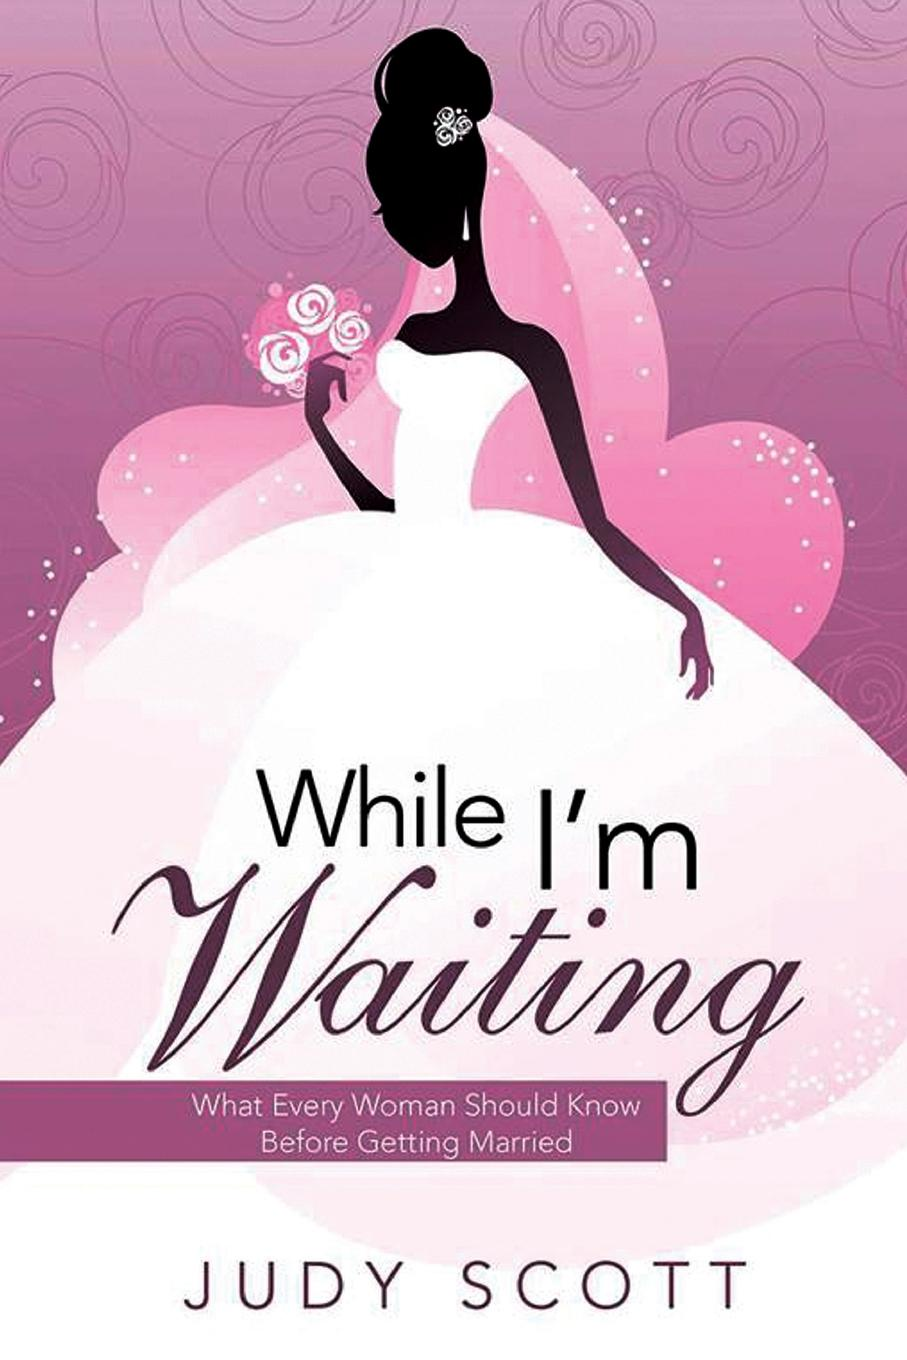 где купить Judy Scott While I'm Waiting. What Every Woman Should Know Before Getting Married по лучшей цене